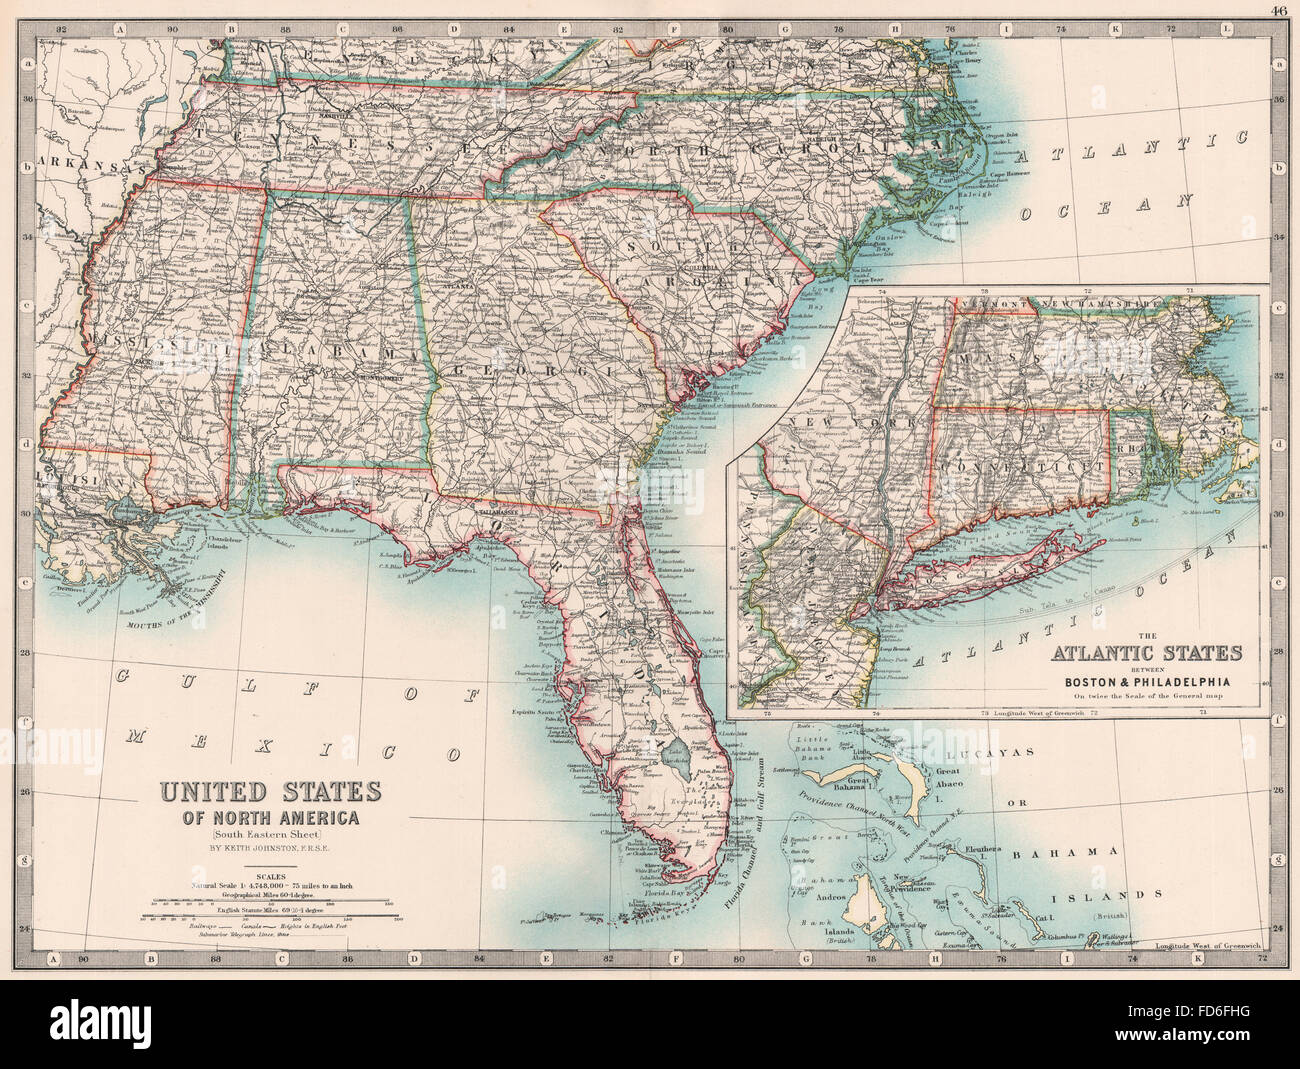 USA SOUTH EAST/ATLANTIC STATES: Carolinas Florida Georgia &c ...